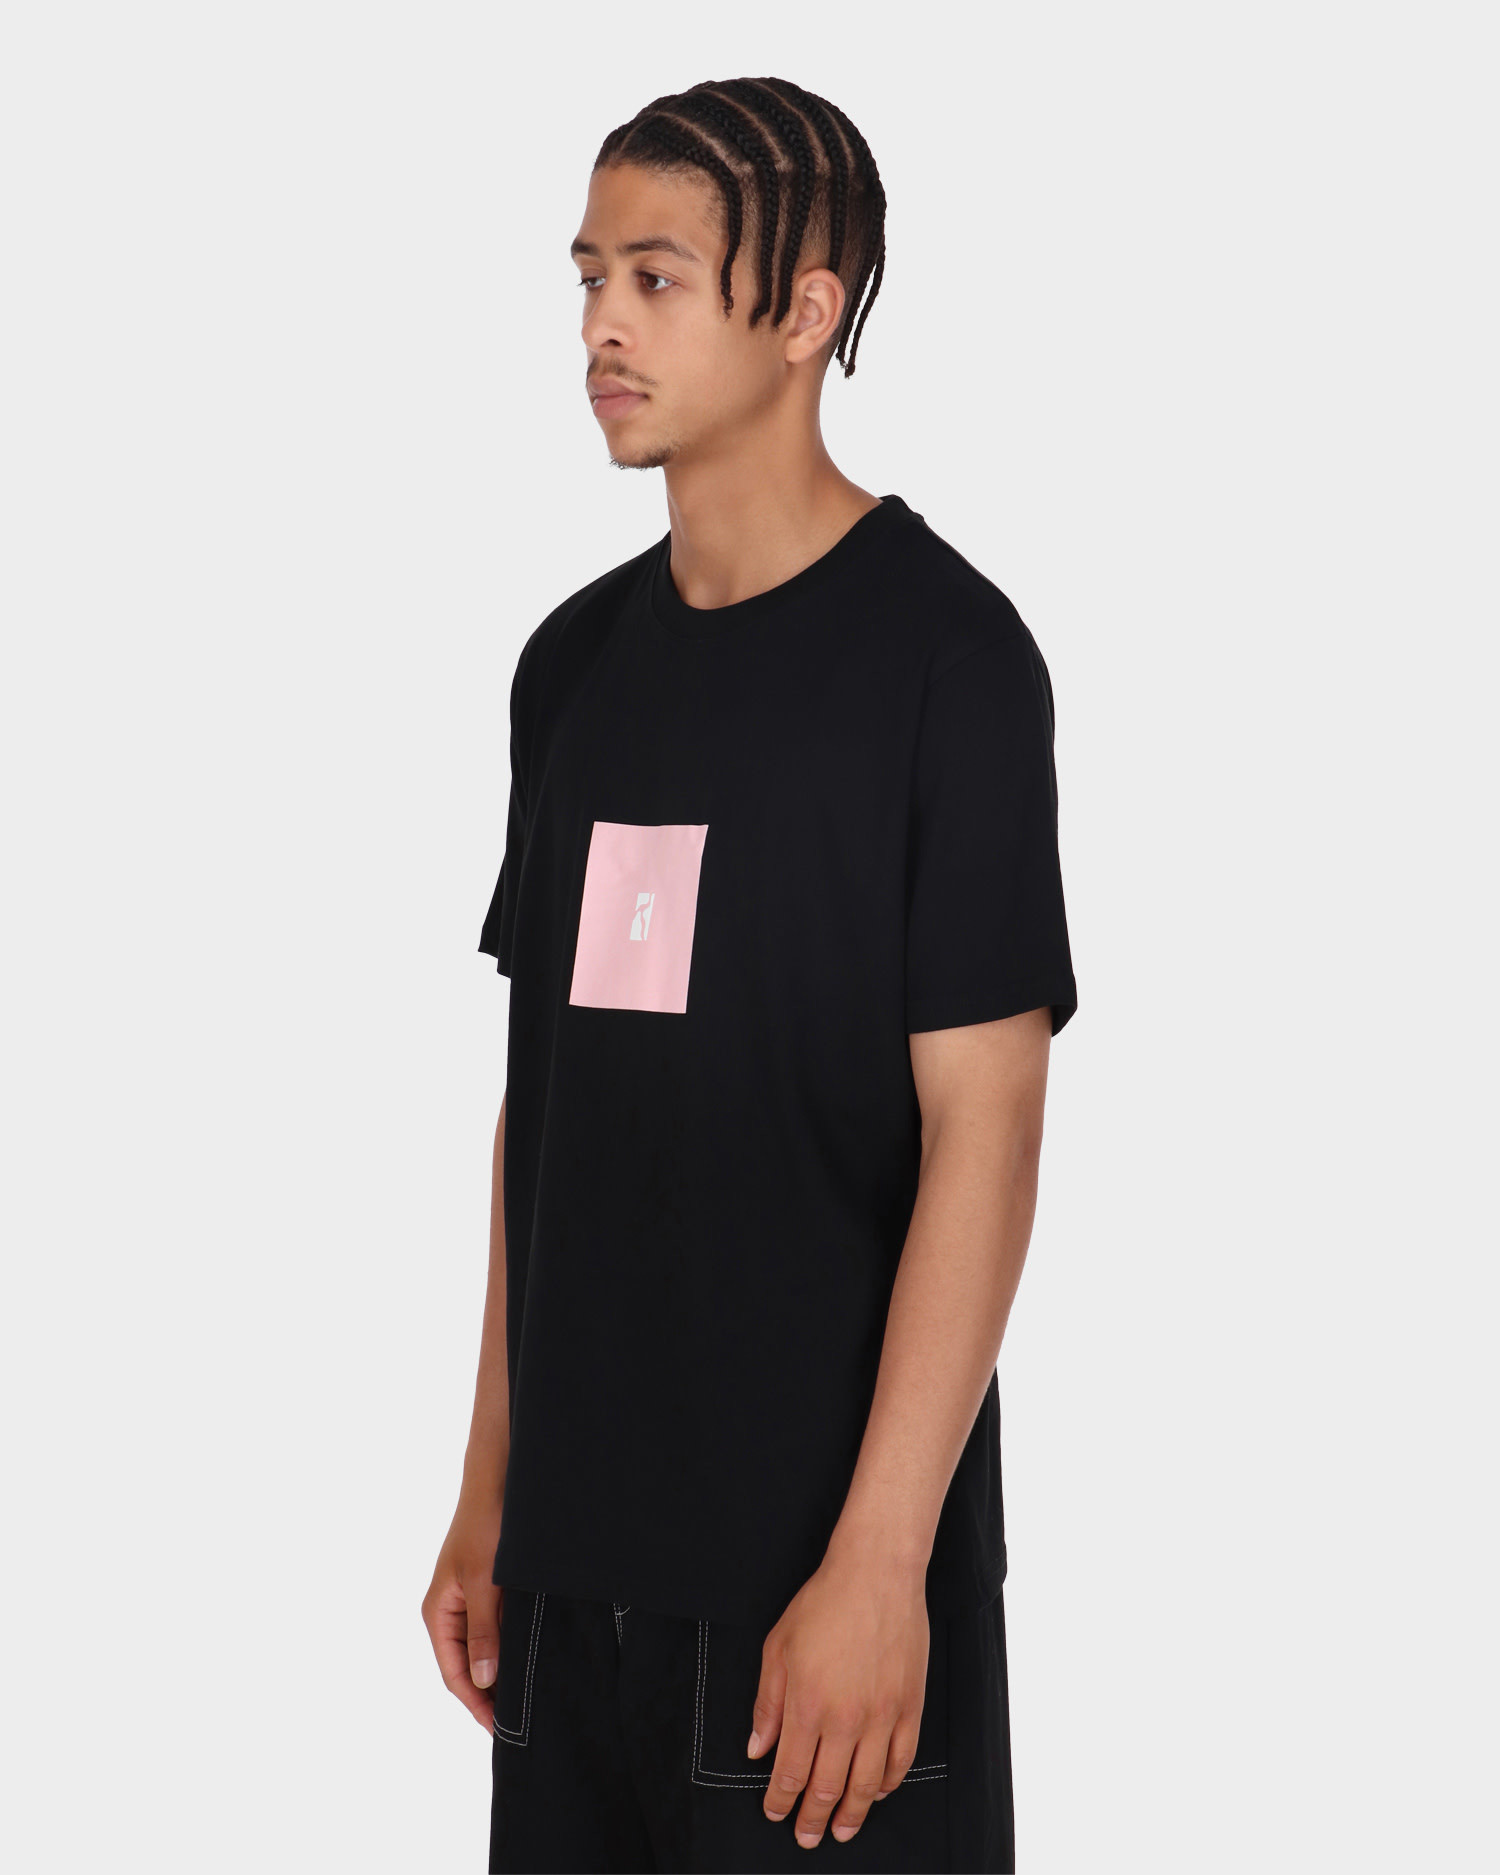 Poetic Collective Box T-shirt Black/Pink